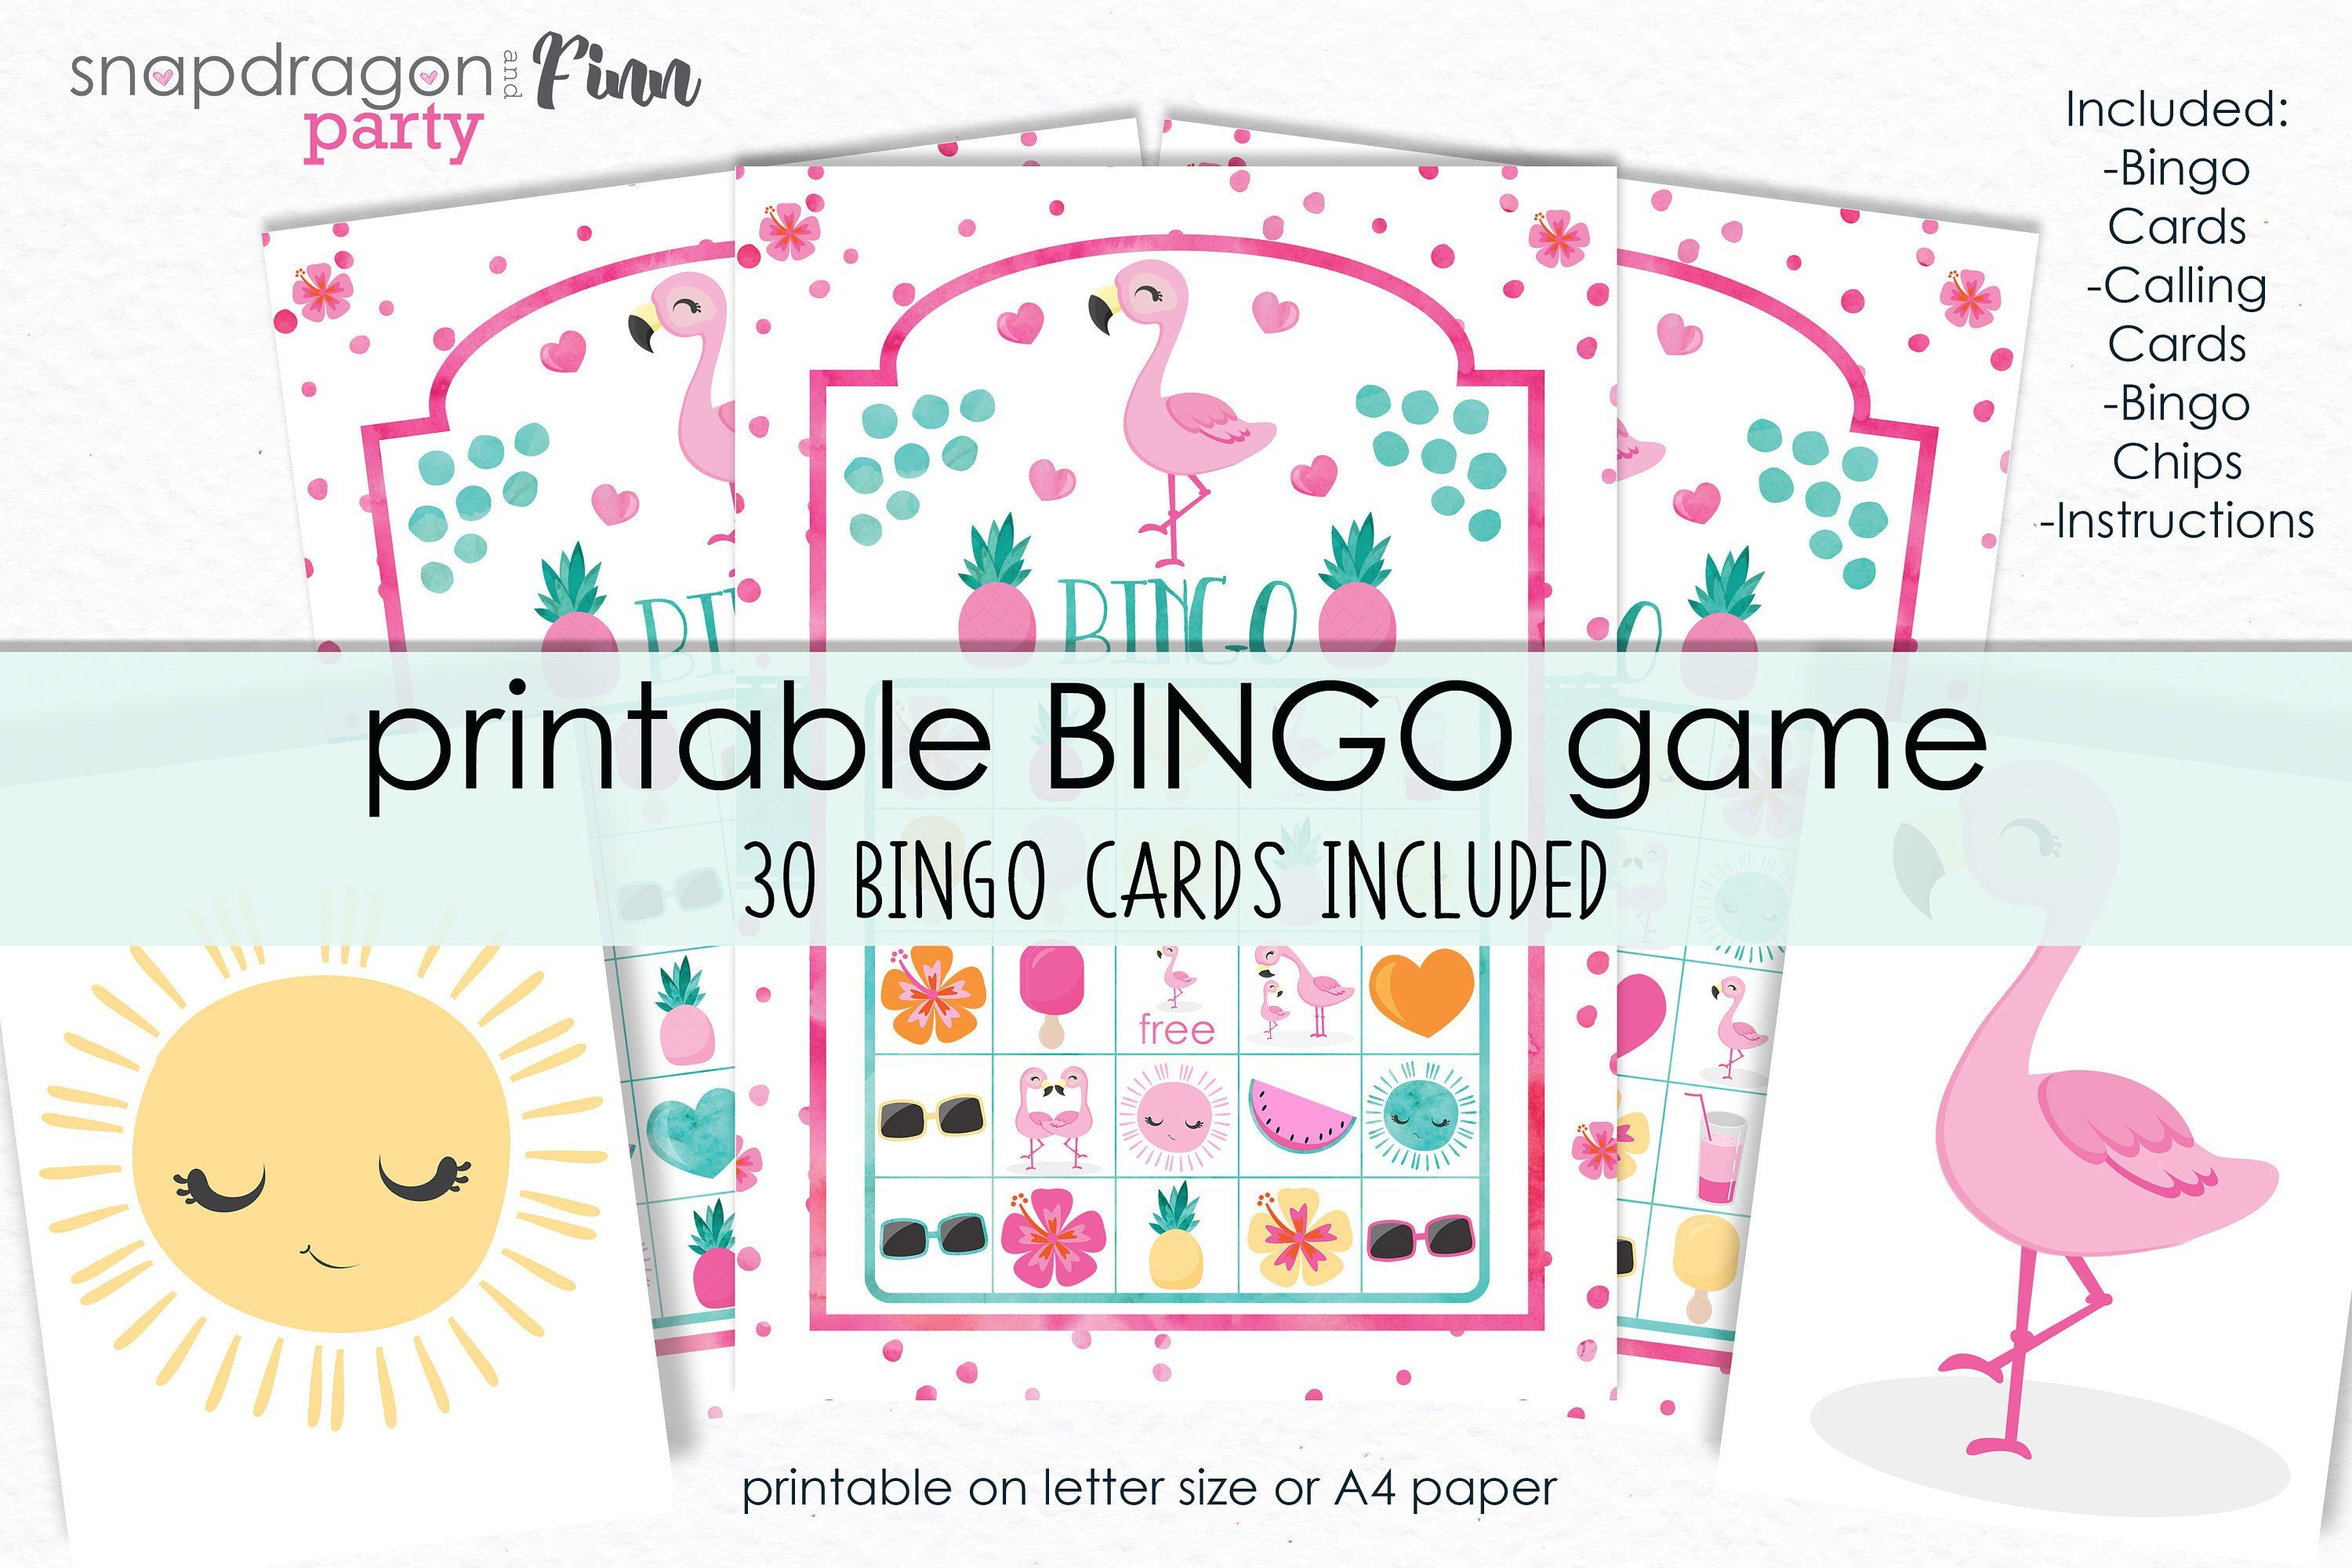 photo regarding Printable Bingo Chips referred to as Flamingo Bingo Printable Activity - Printable Flamingo Birthday